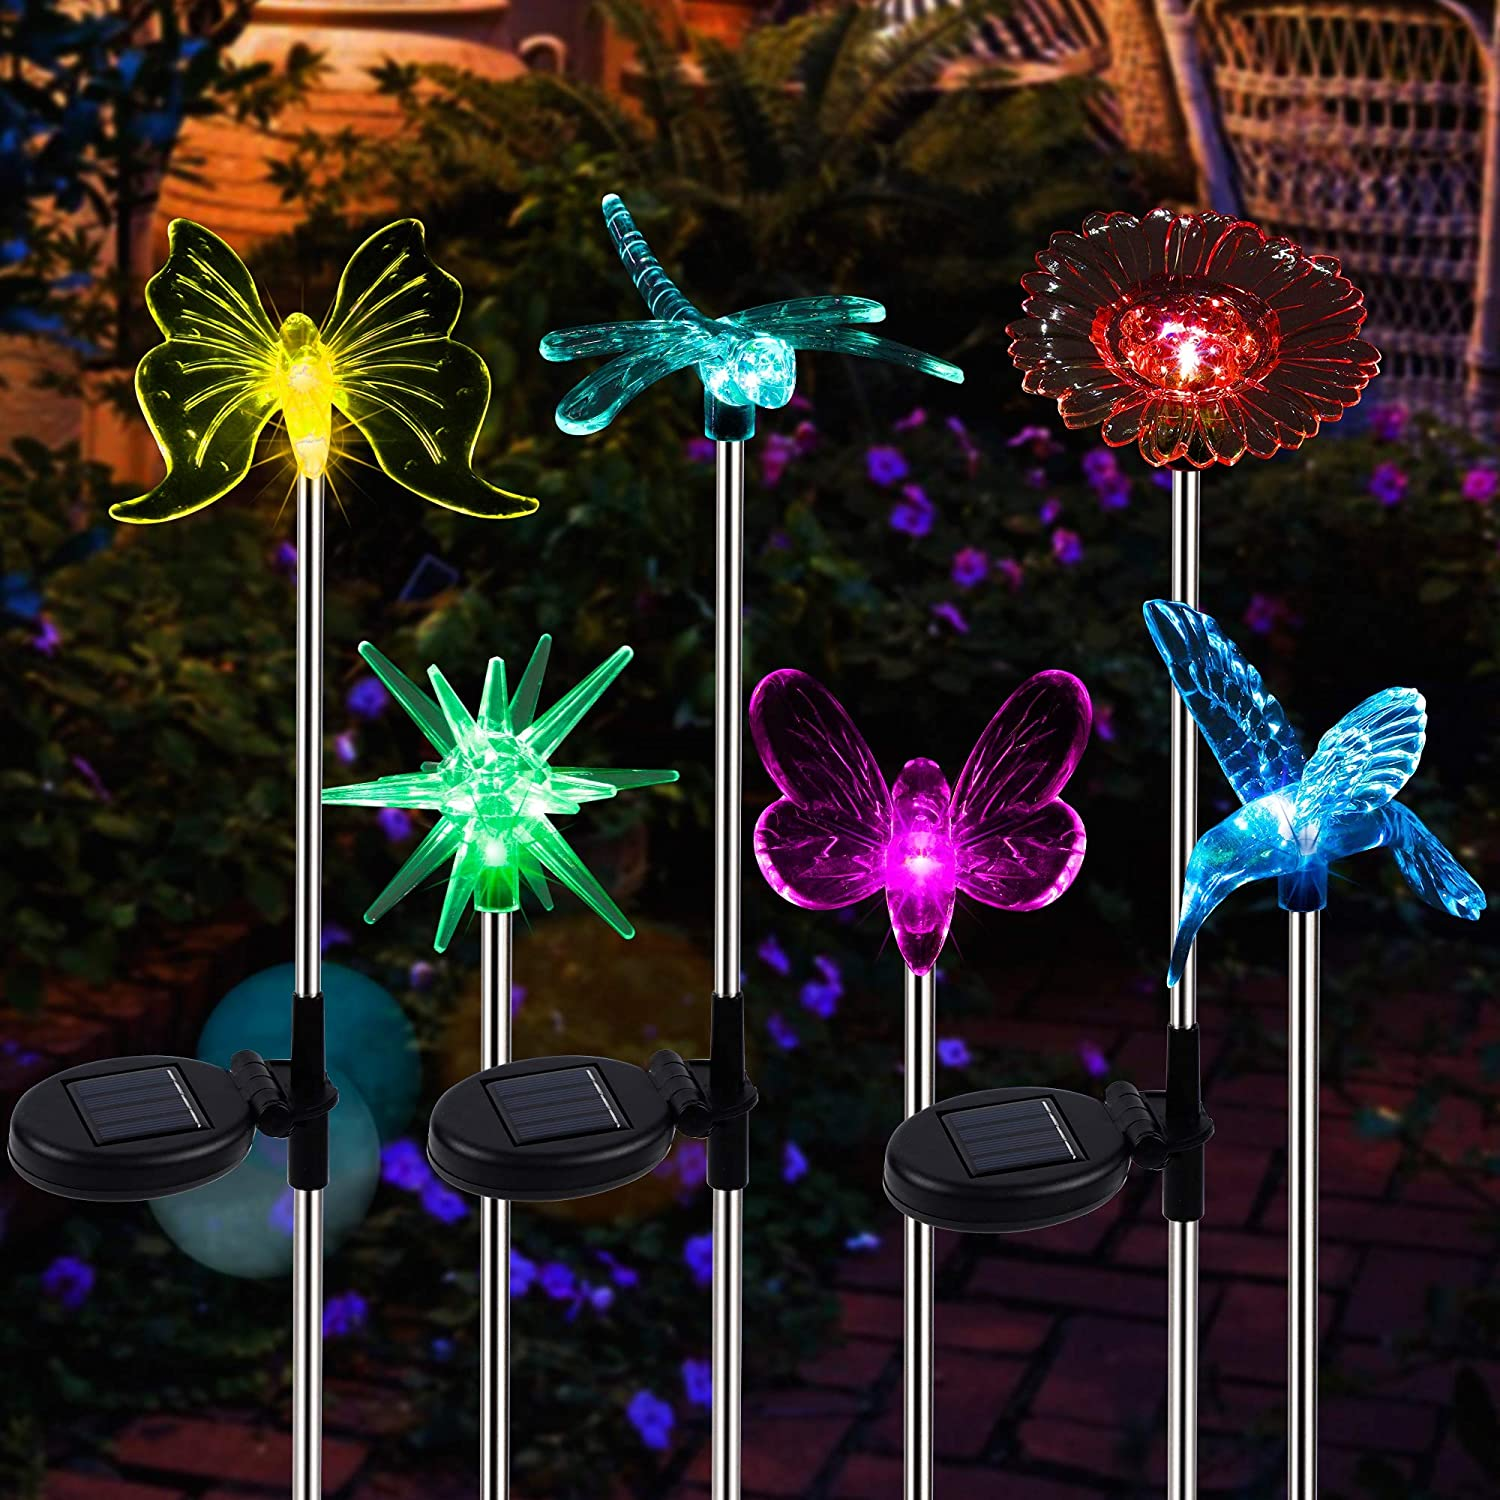 MAGGIFT 6 Pack Outdoor Solar Figurine Lights, Solar Powered Garden Stake Light, Color Changing LED Landscape Lighting, Sparkling Star Flower Hummingbird Butterfly Dragonfly Bee for Patio Yard Pathway